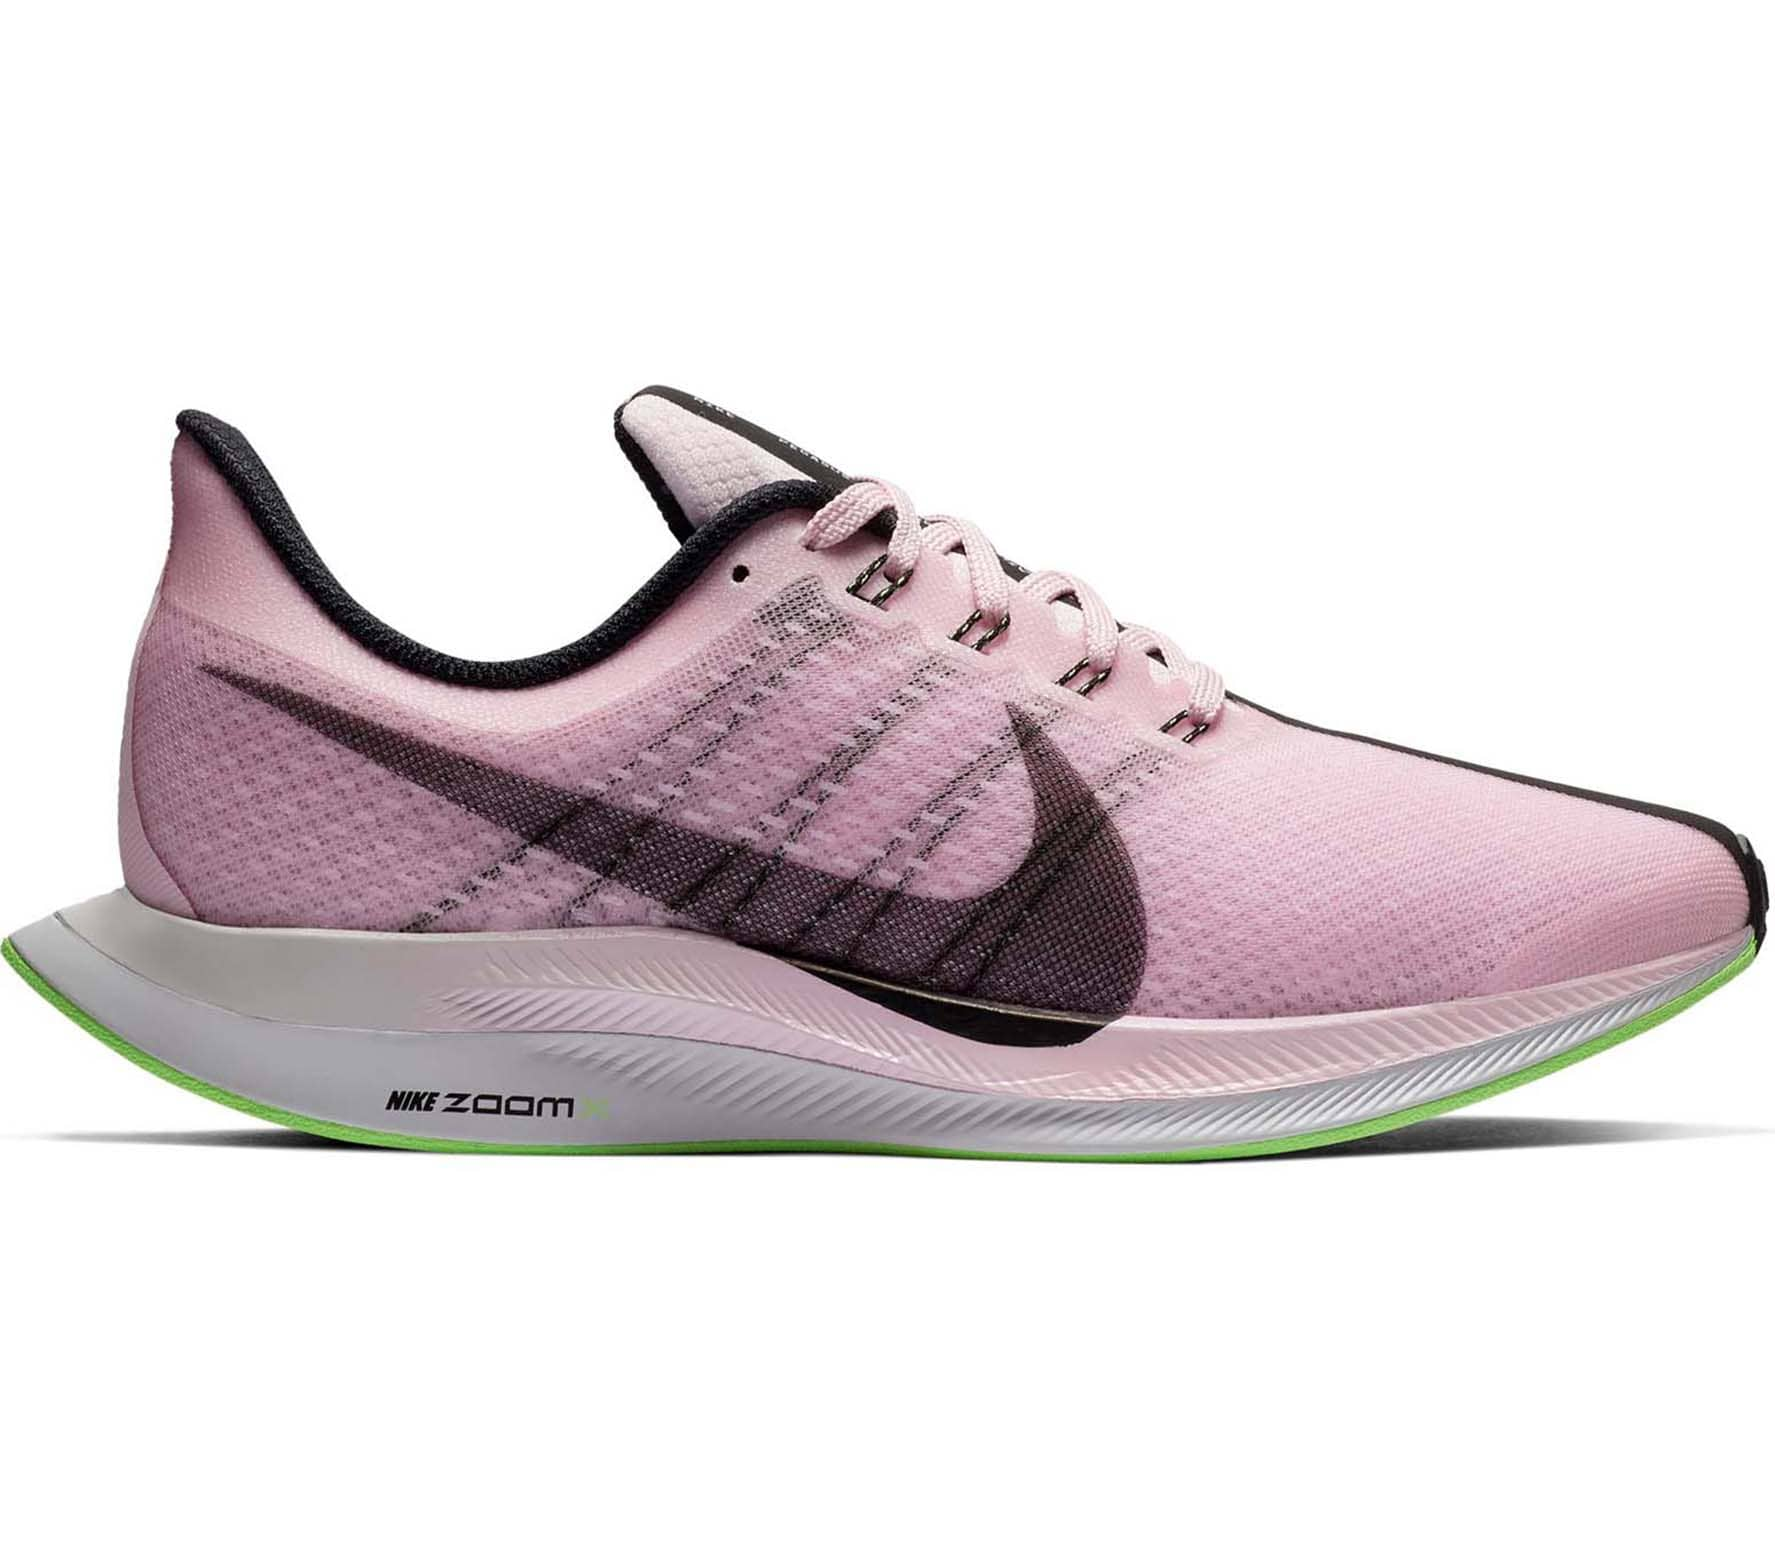 3ff9d0a28d13 Nike Zoom Pegasus Turbo Women Running Shoes pink - buy it at the ...